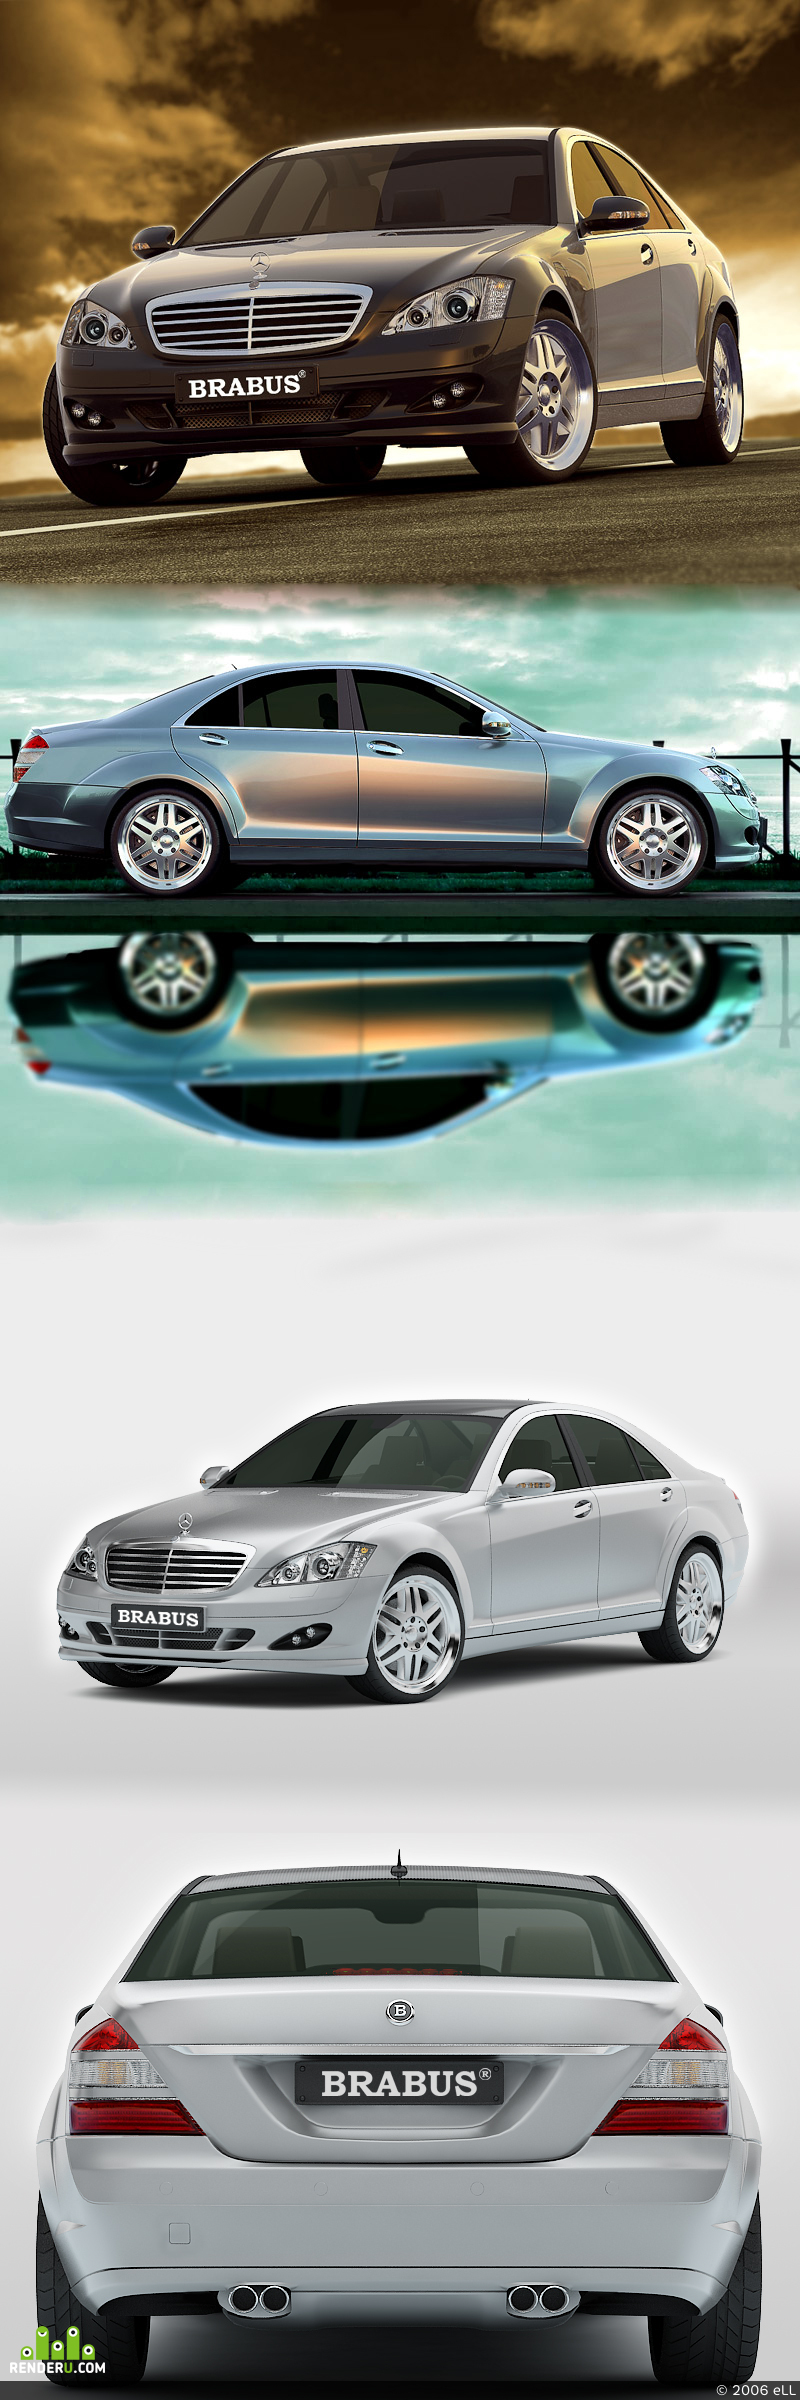 preview Mersedes Brabus s600 w221